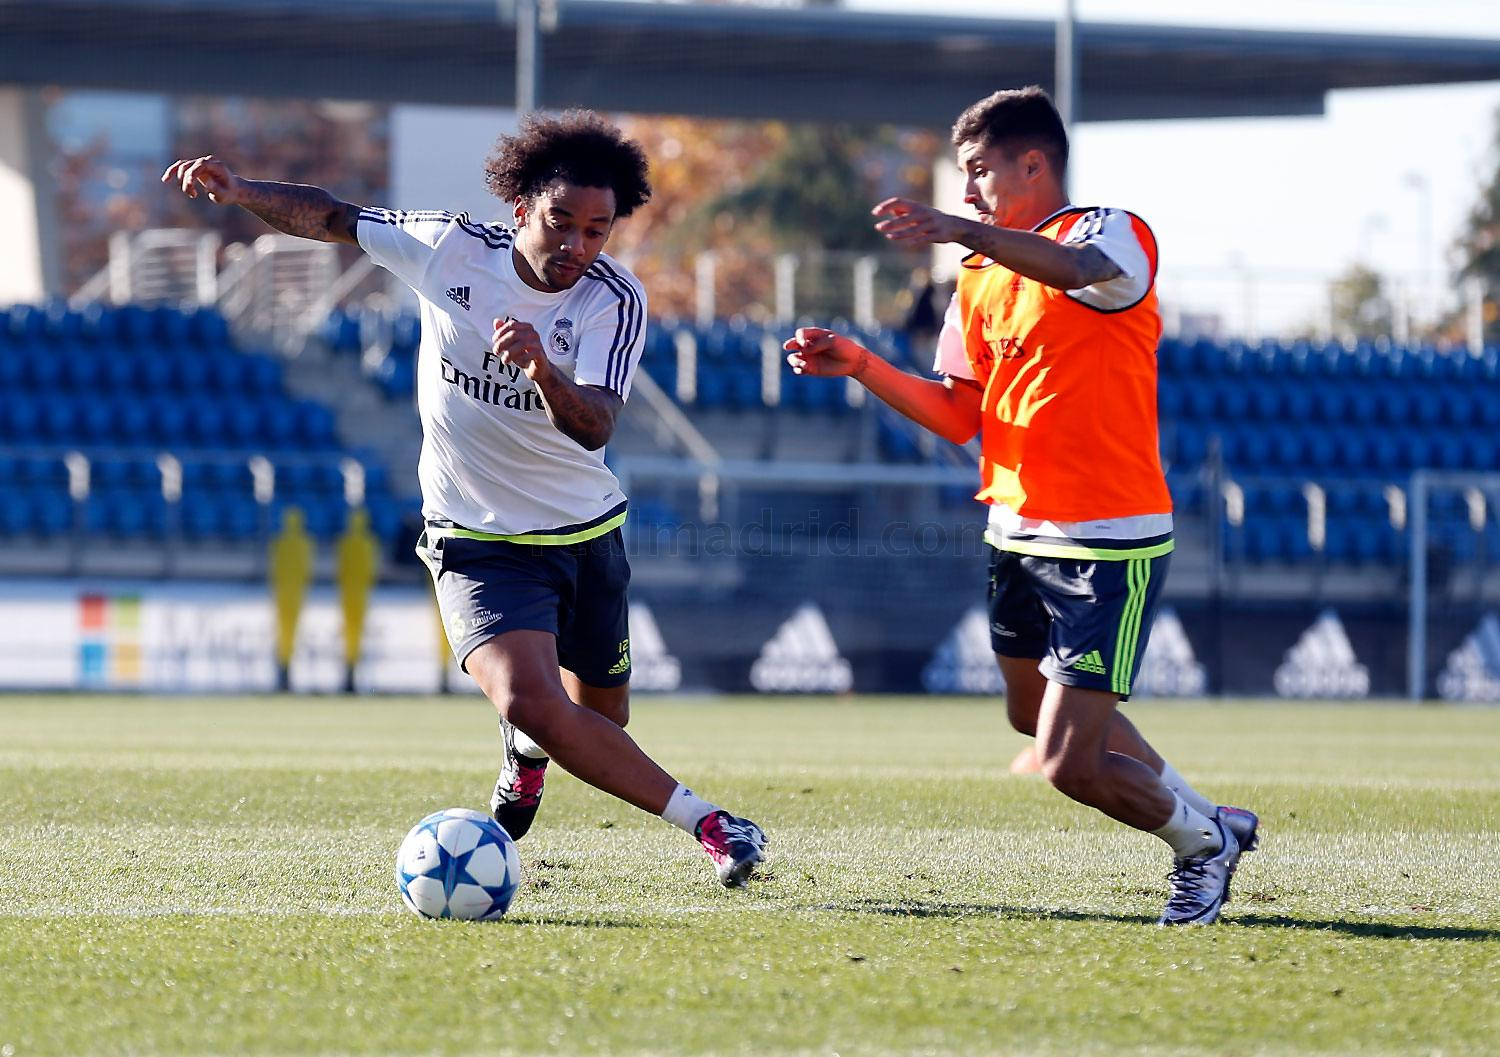 Real Madrid - Entrenamiento del Real Madrid - 06-12-2015